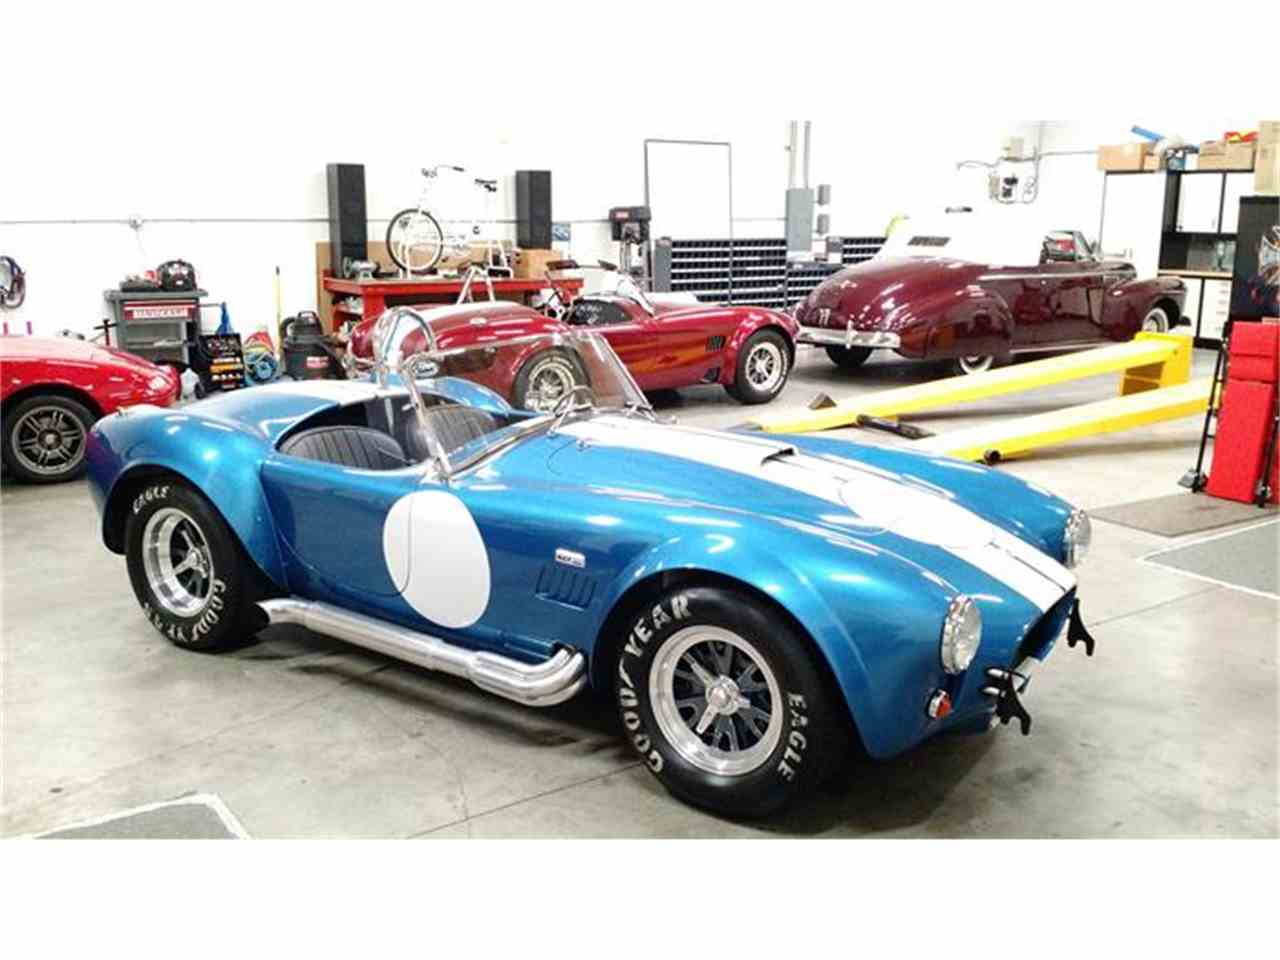 1965 Shelby Cobra Superformance Mark III for Sale - CC-807579